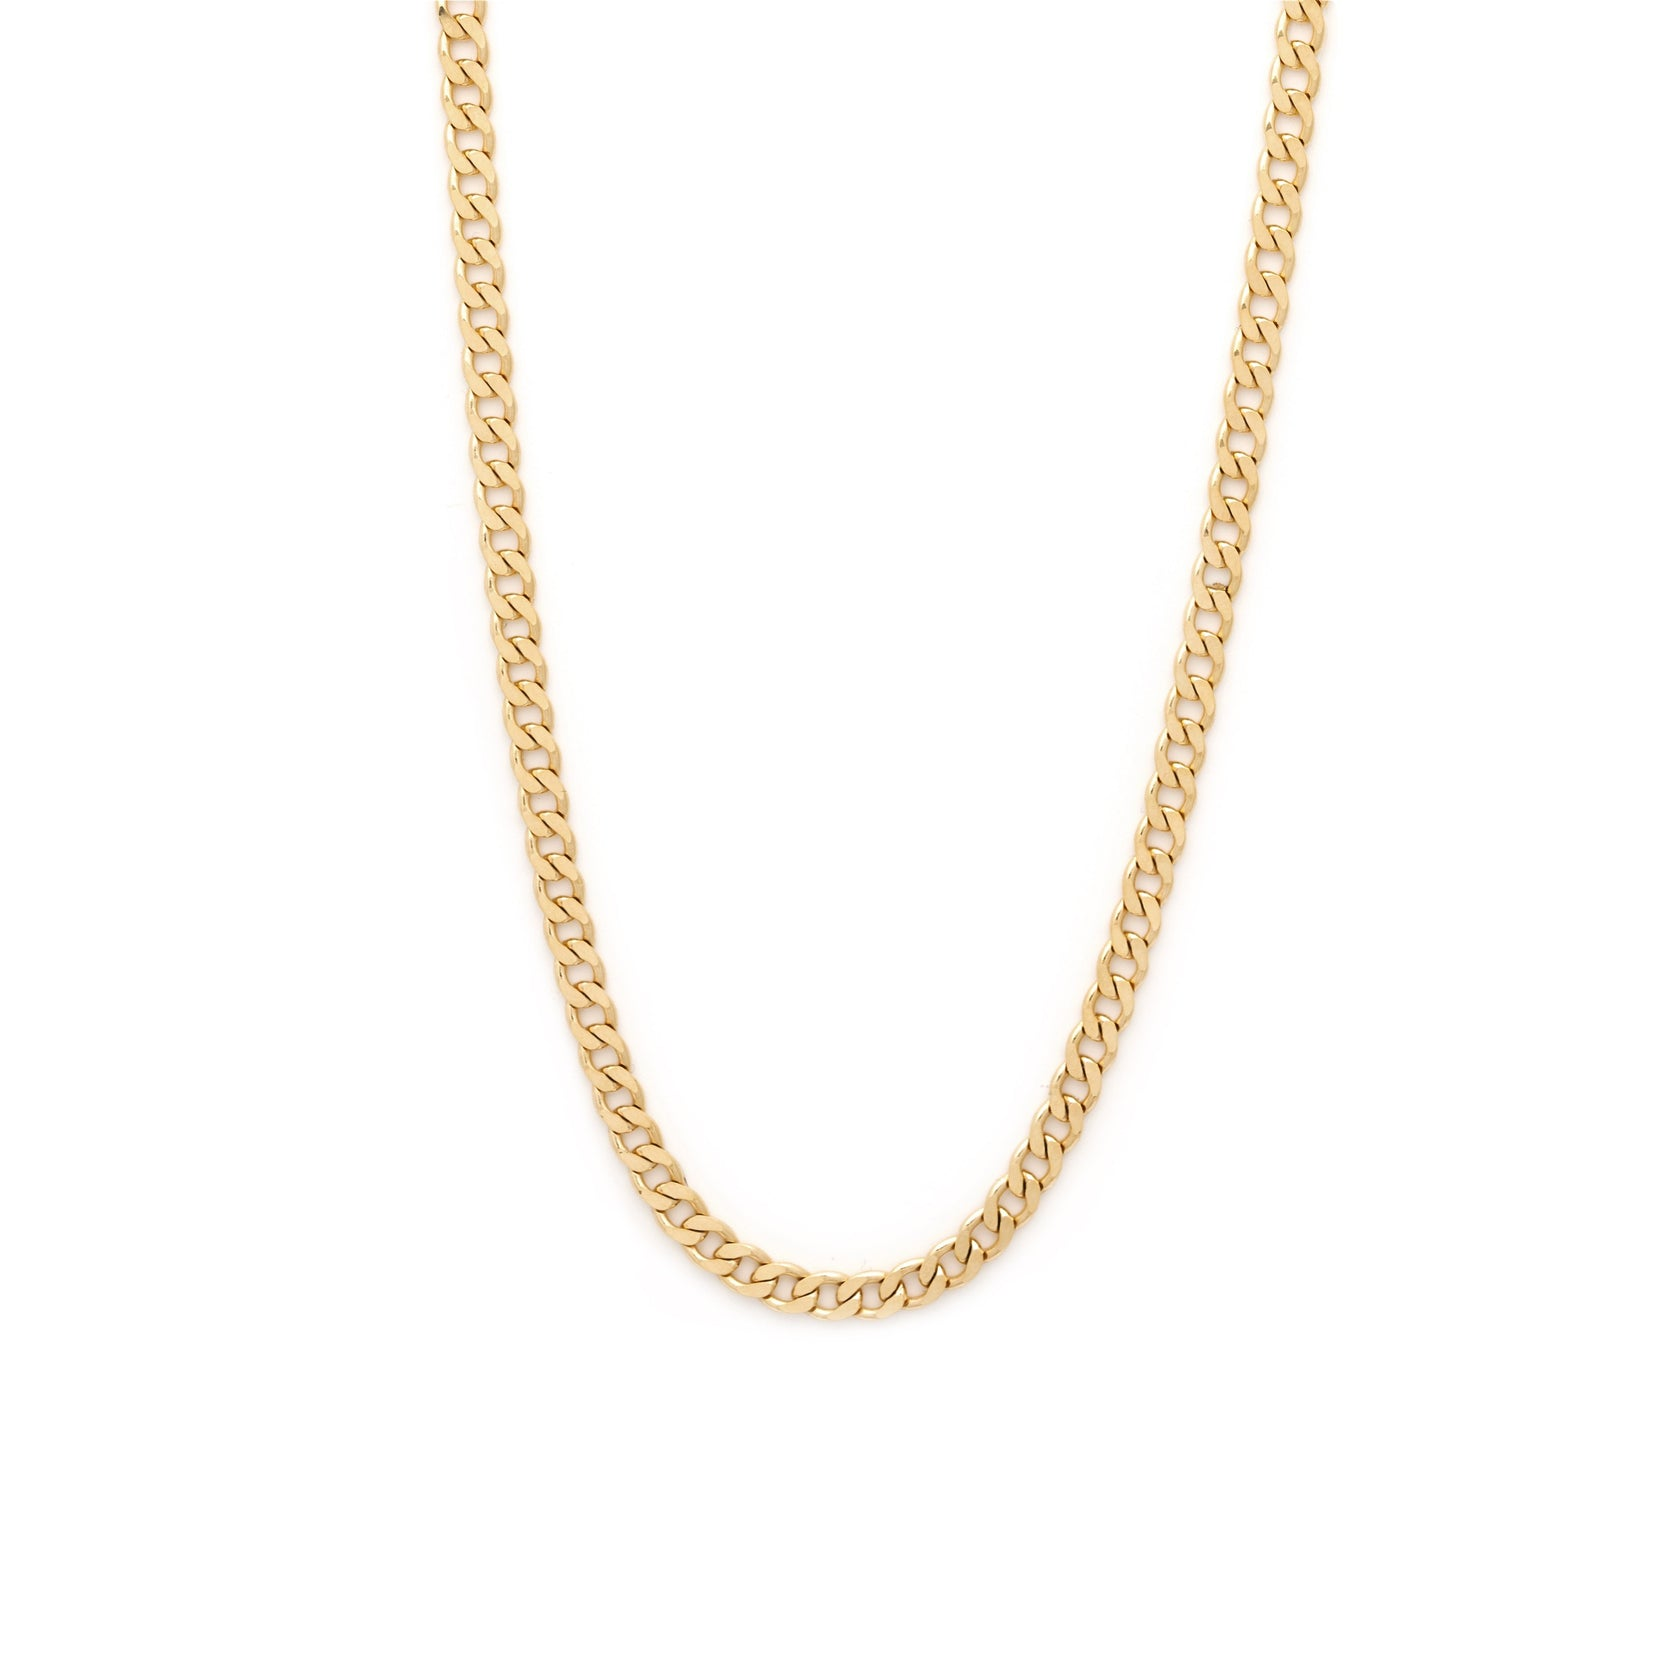 Men's Thick Curb Chain - 10k Solid Gold